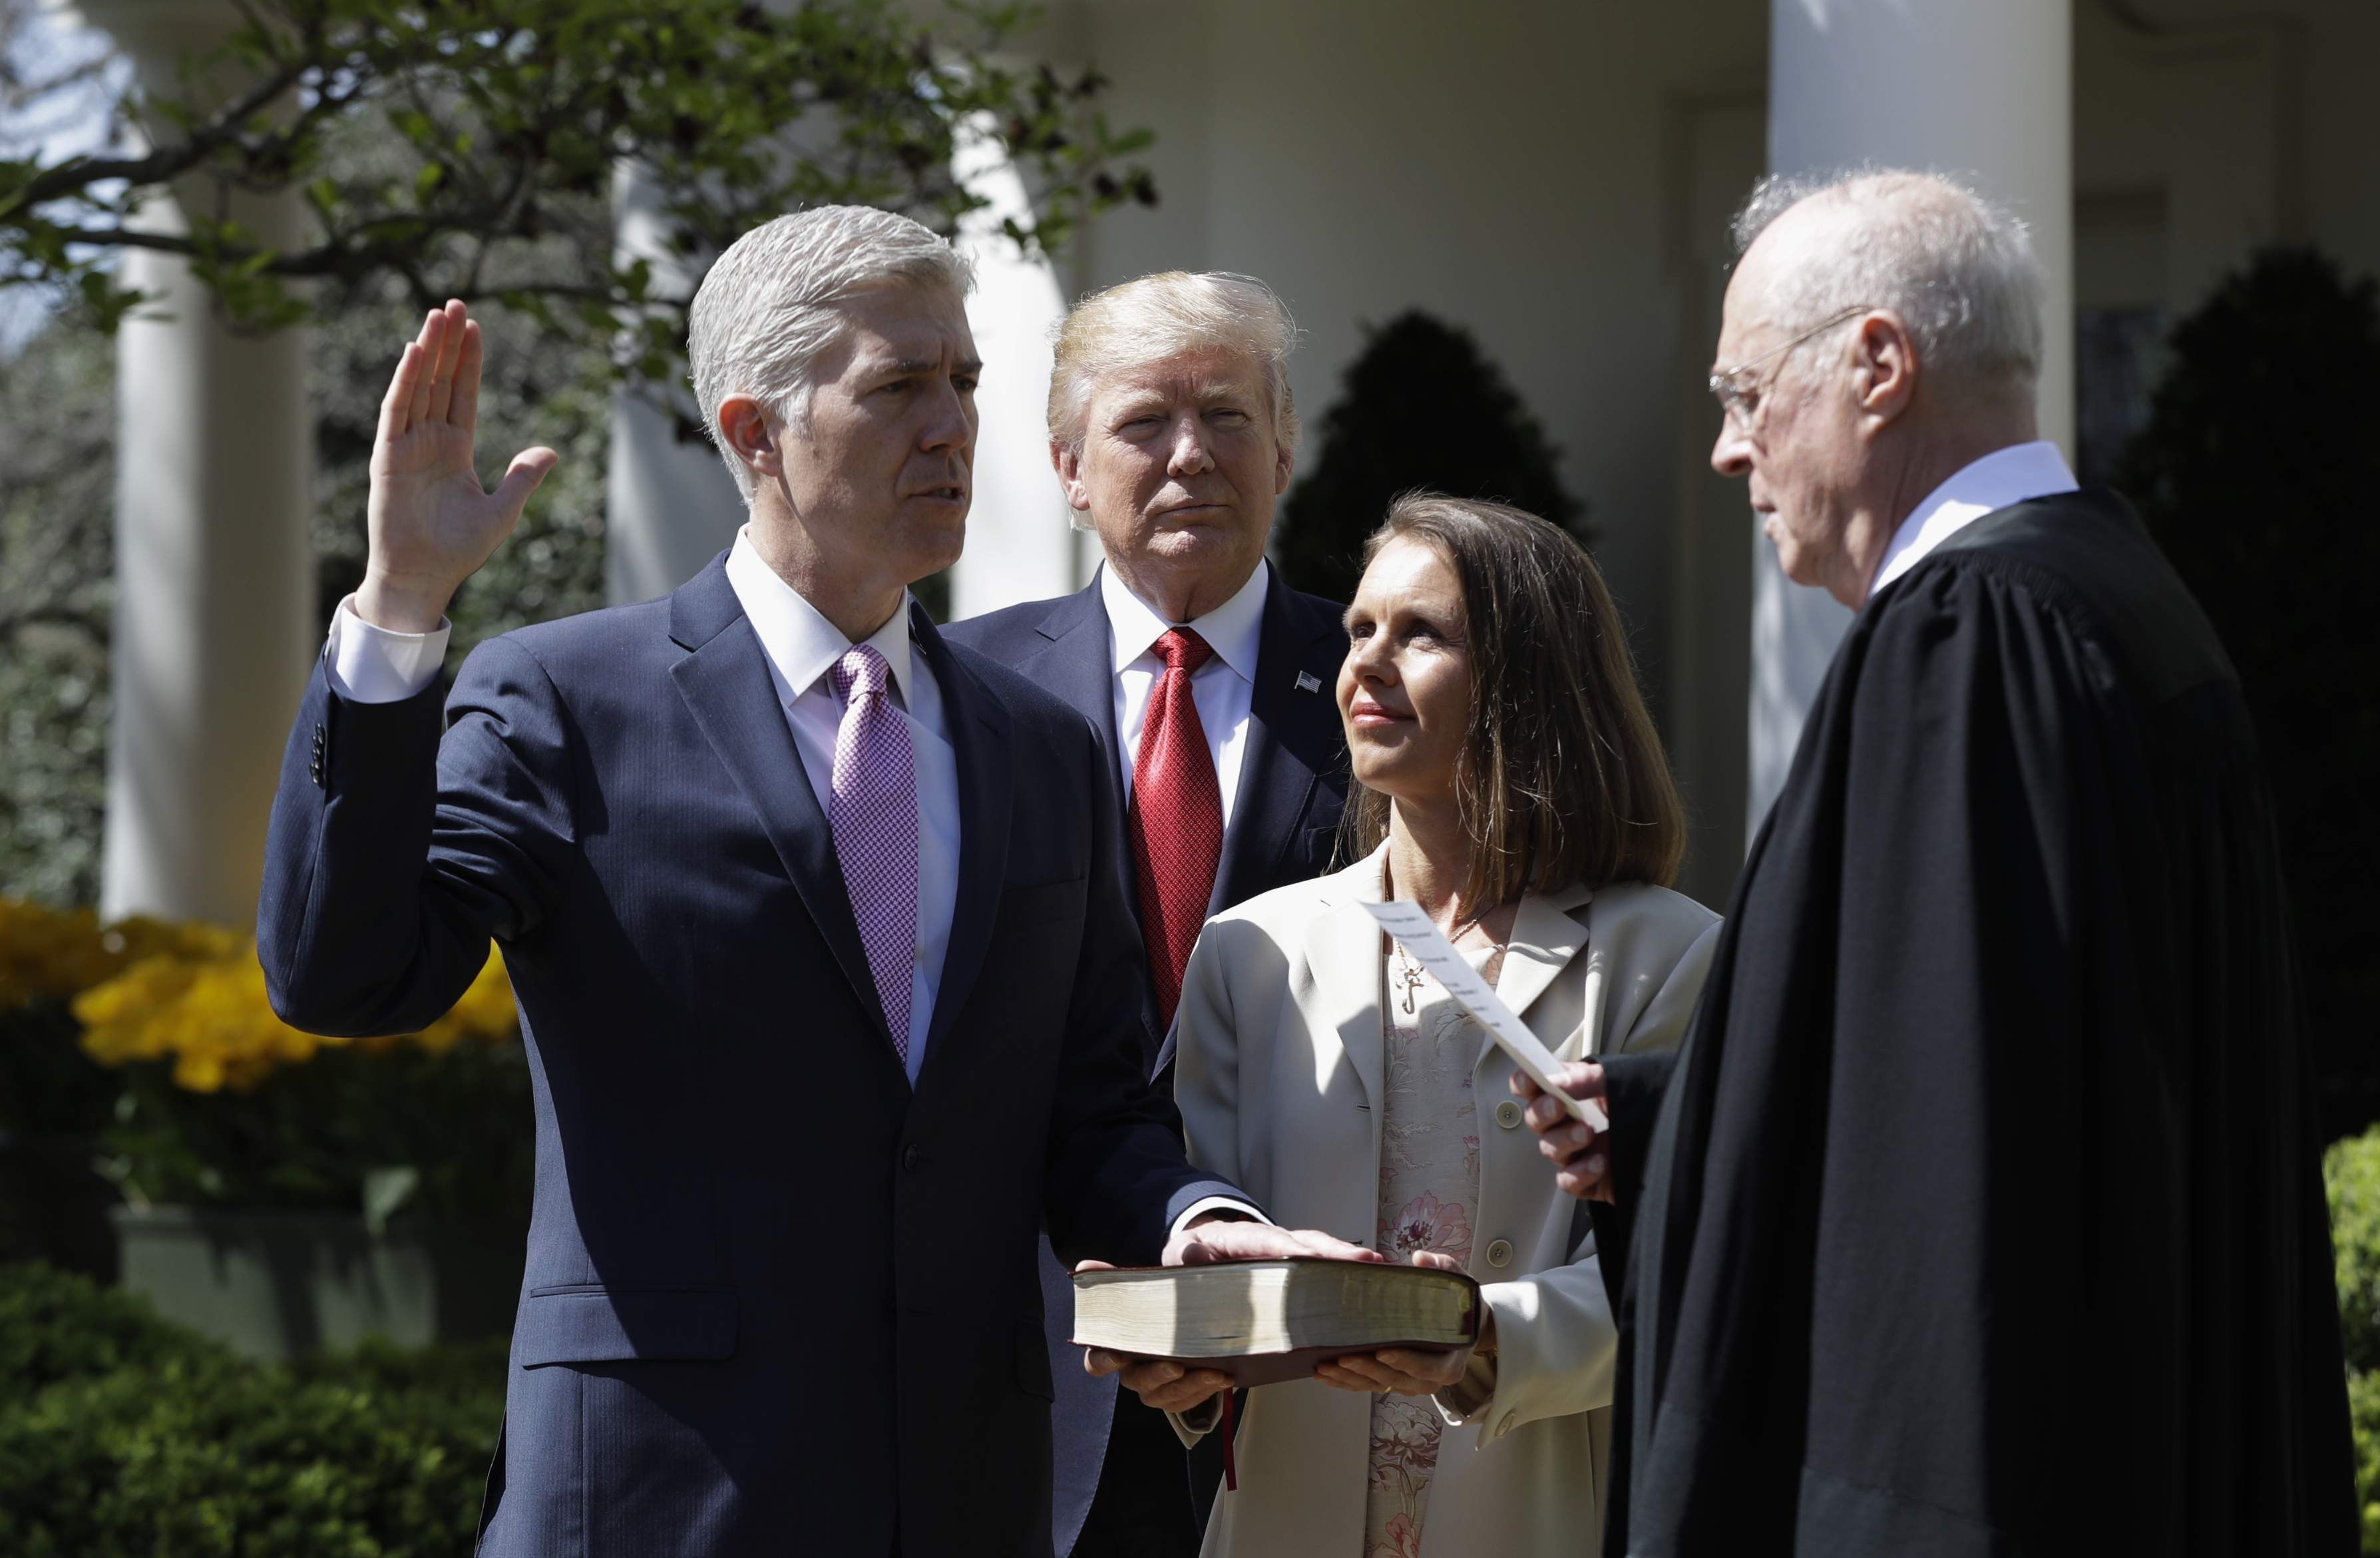 DAY 81 - In this April 10, 2017, file photo, President Donald Trump watches as Supreme Court Justice Anthony Kennedy administers the judicial oath to Justice Neil Gorsuch in the Rose Garden of the White House White House in Washington. Holding the Bible is Gorsuch's wife Marie Louise Gorsuch. (AP Photo/Evan Vucci, File)